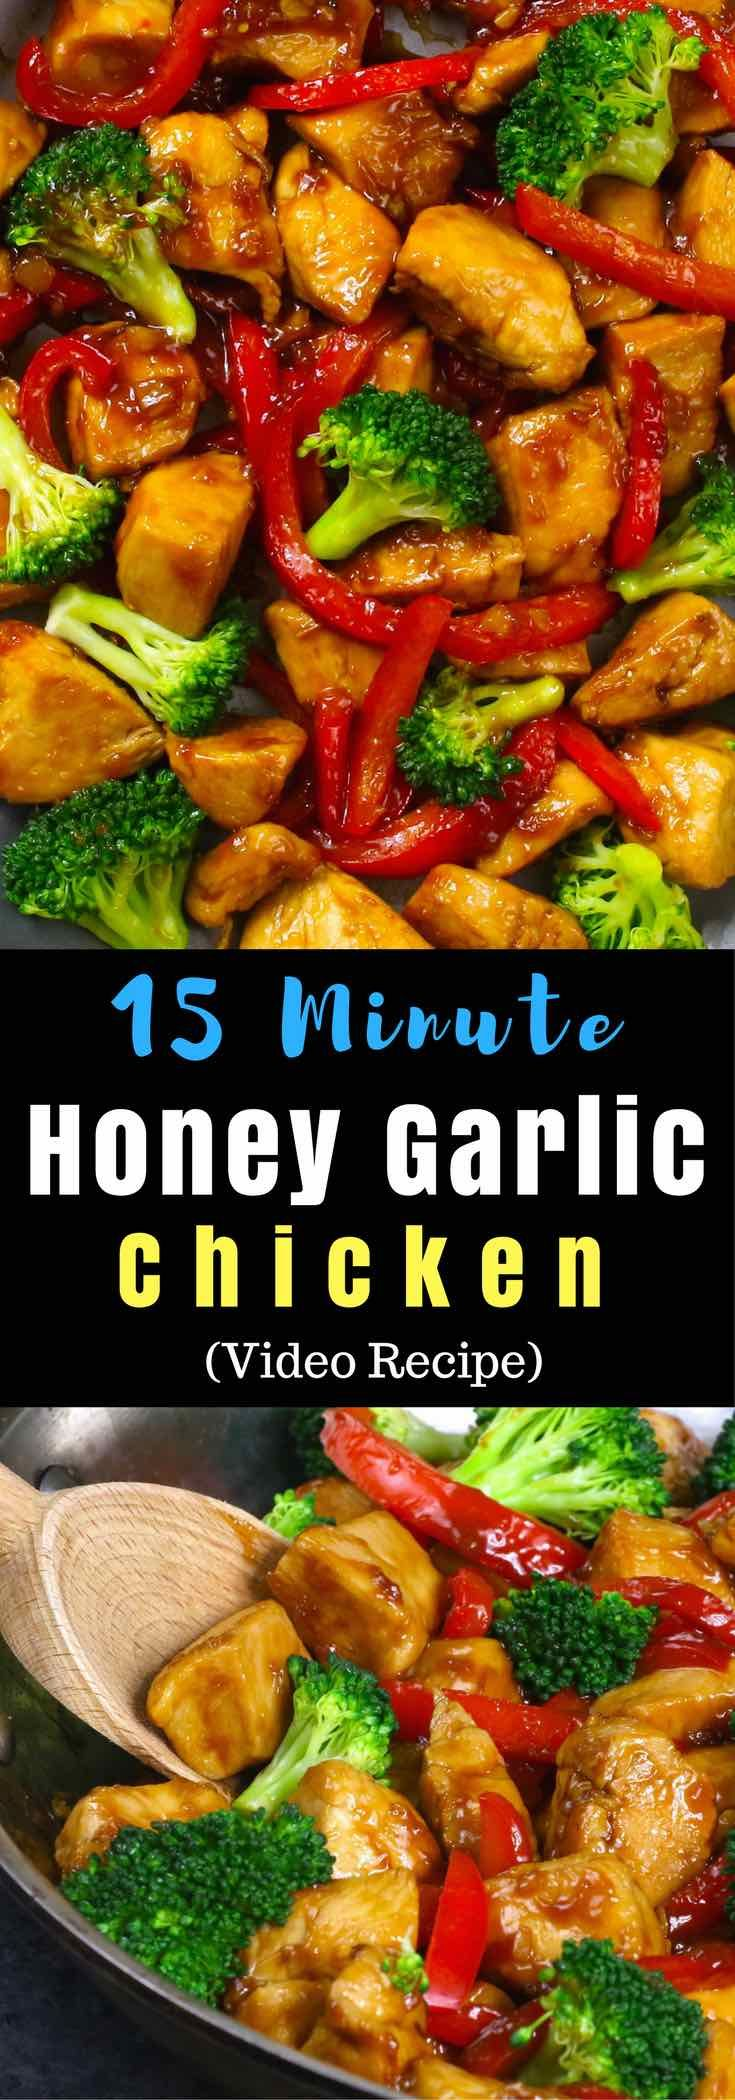 The easiest, most unbelievably delicious Honey Garlic Chicken recipe. And it'll be on your dinner table in just 15 minutes. Succulent chicken cooked in honey, garlic and soy sauce mix, seared in frying pan with vegetables. Ready in 15 minutes! Quick and easy dinner recipe. Video recipe.